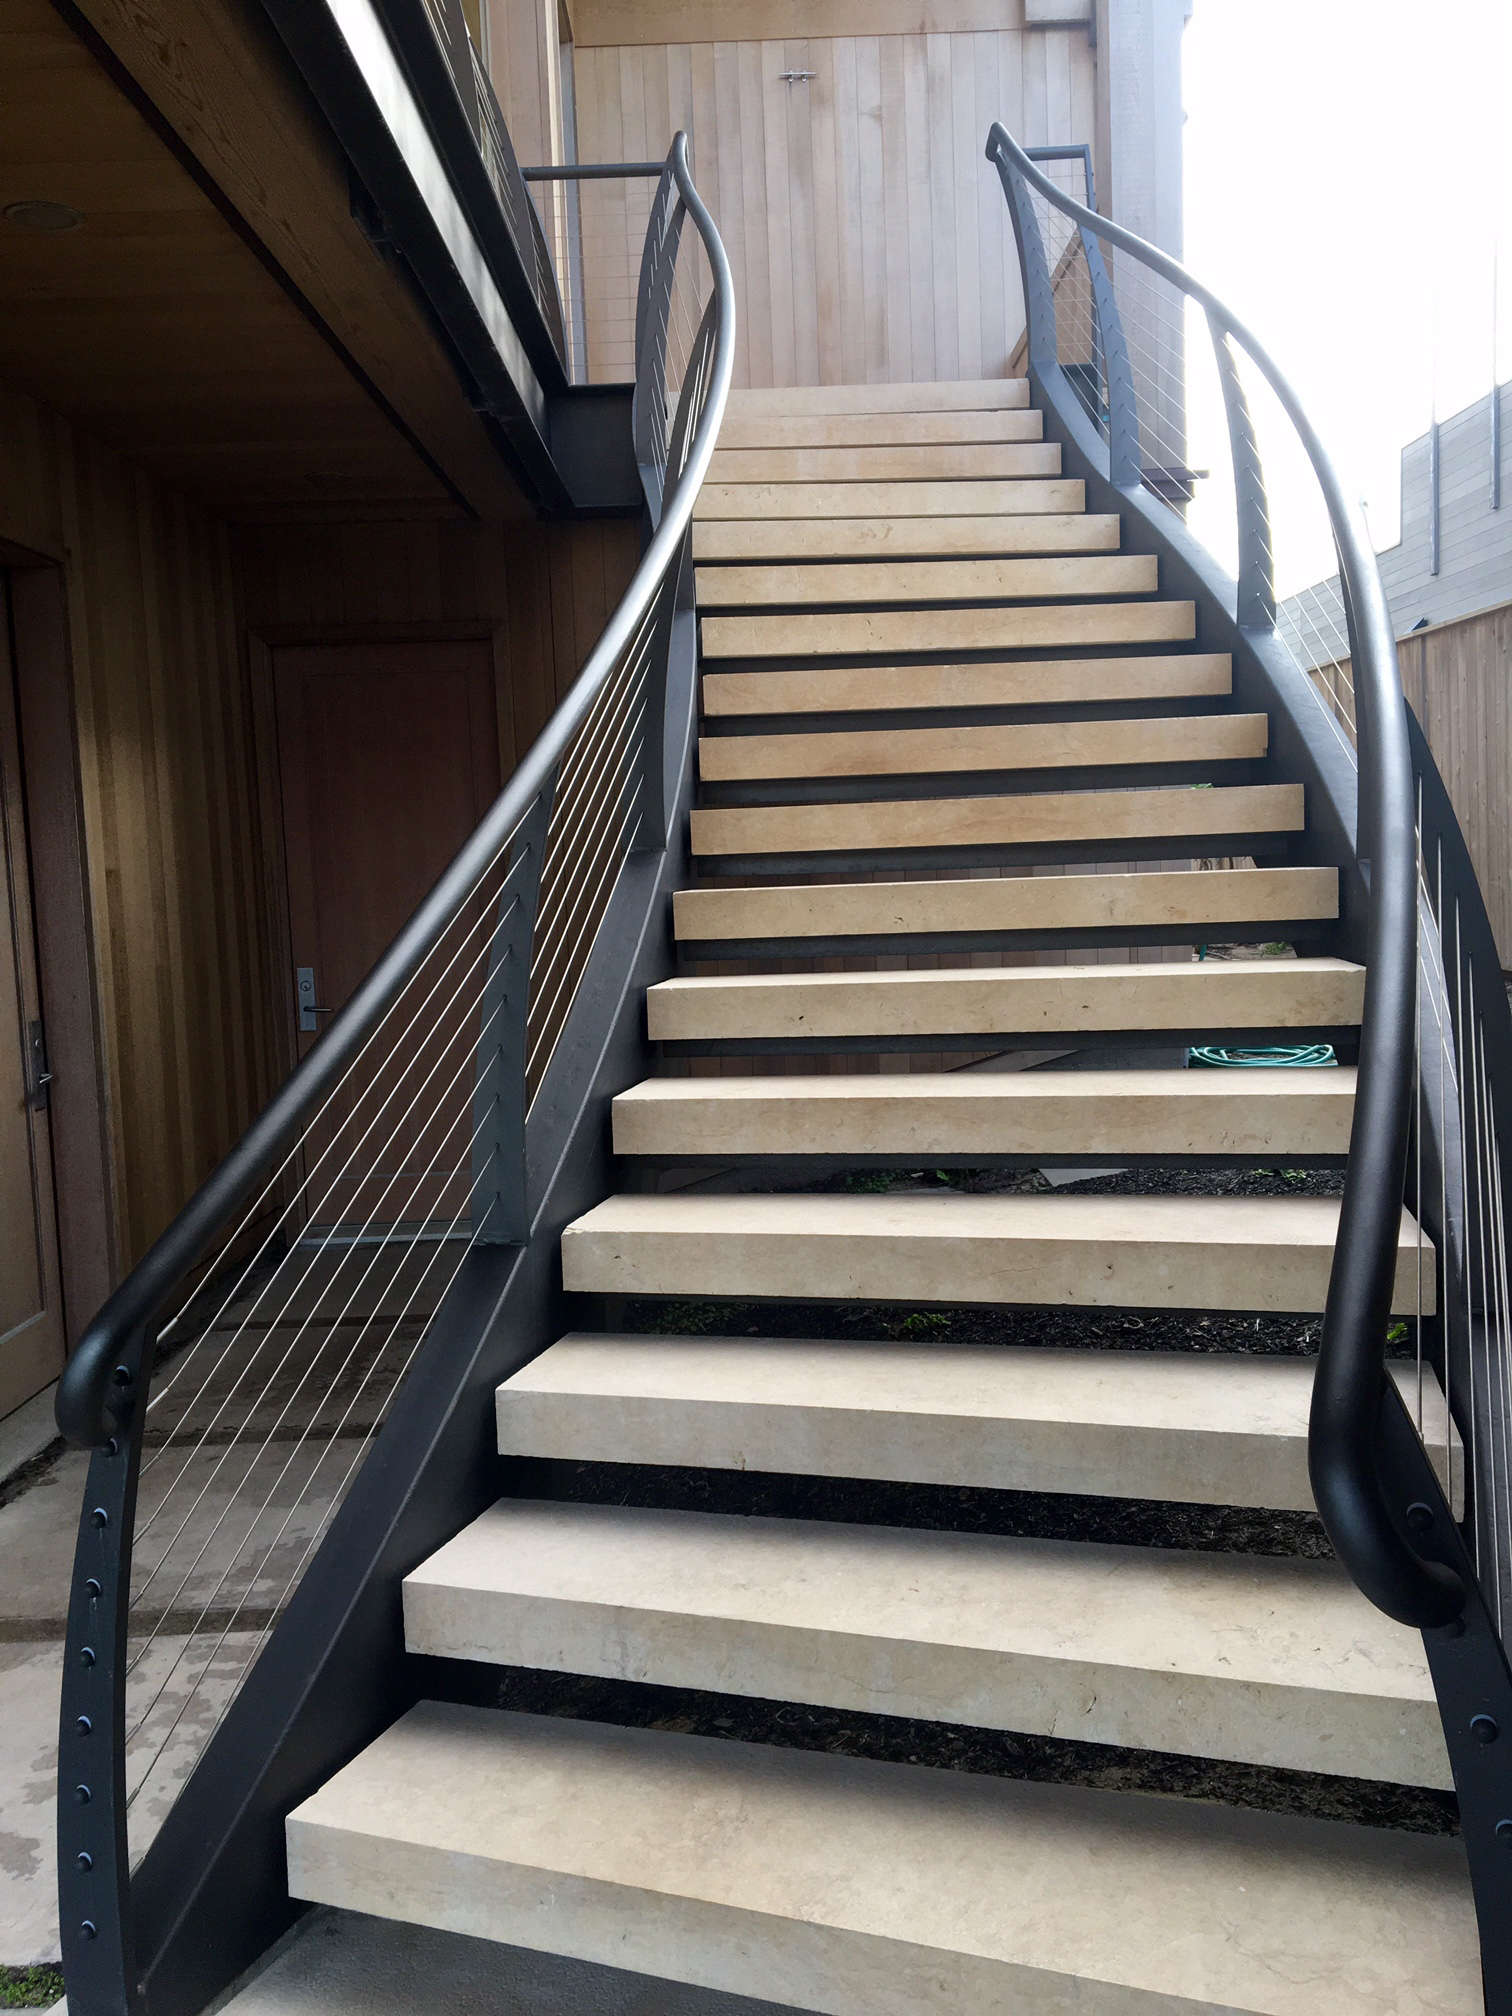 What Are The Different Styles Of Stairways?